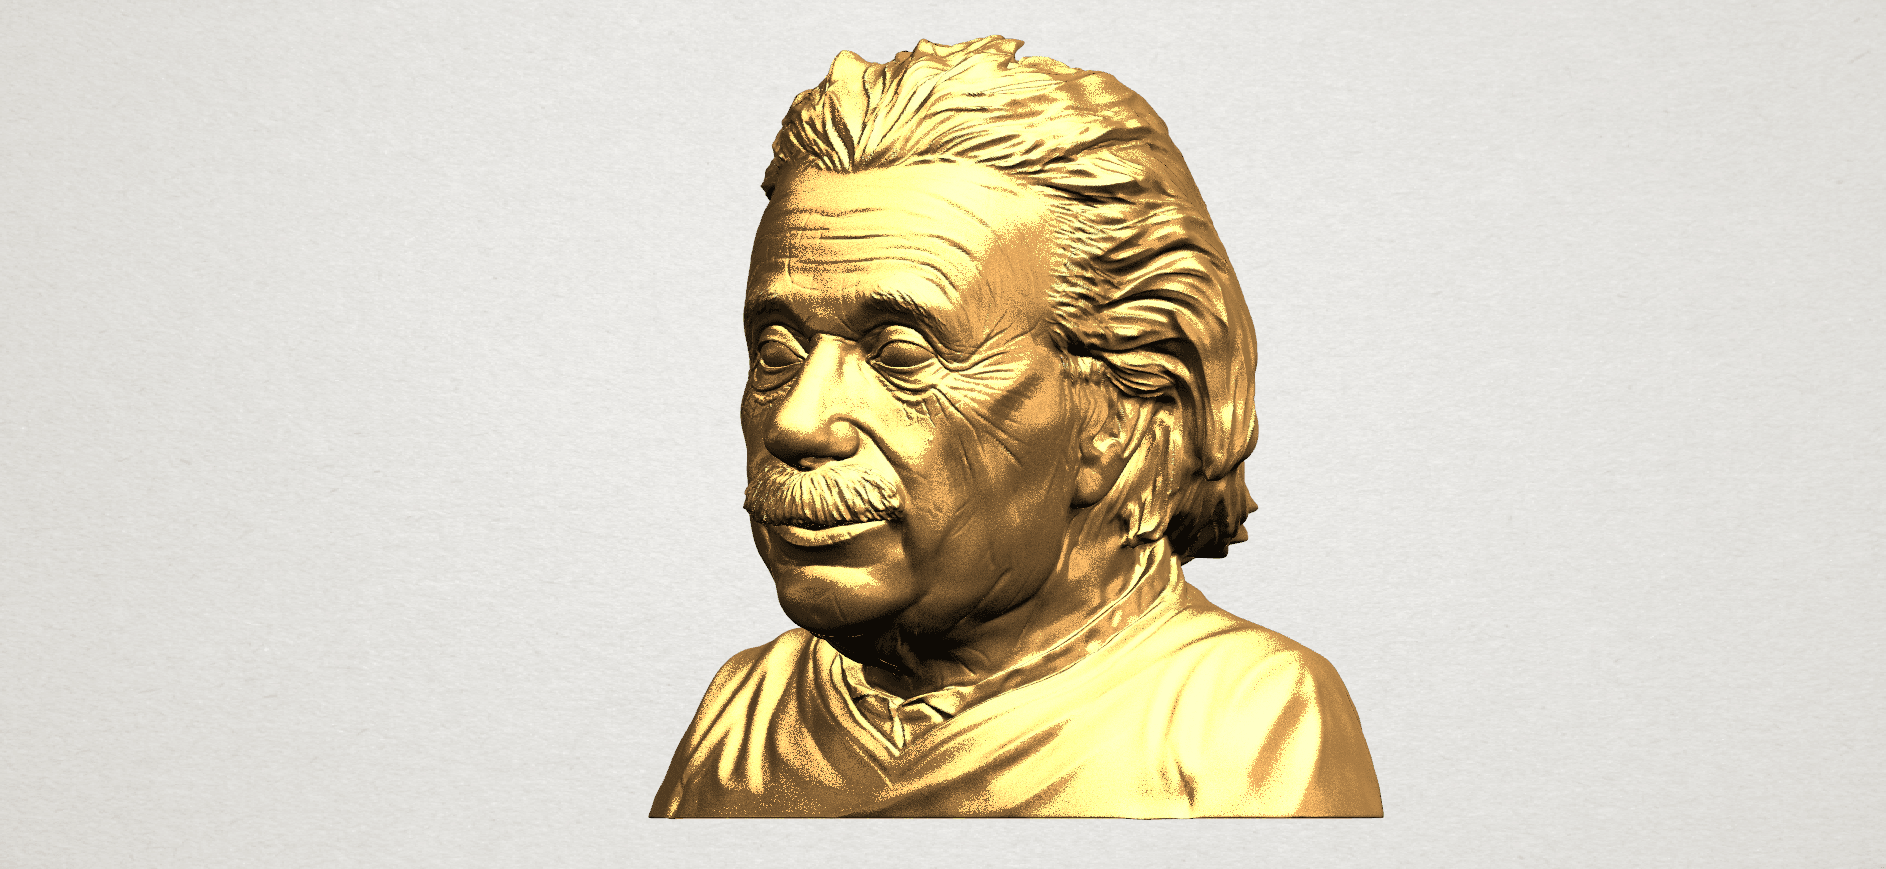 Einstein A02.png Download free STL file Einstein • 3D printer template, GeorgesNikkei